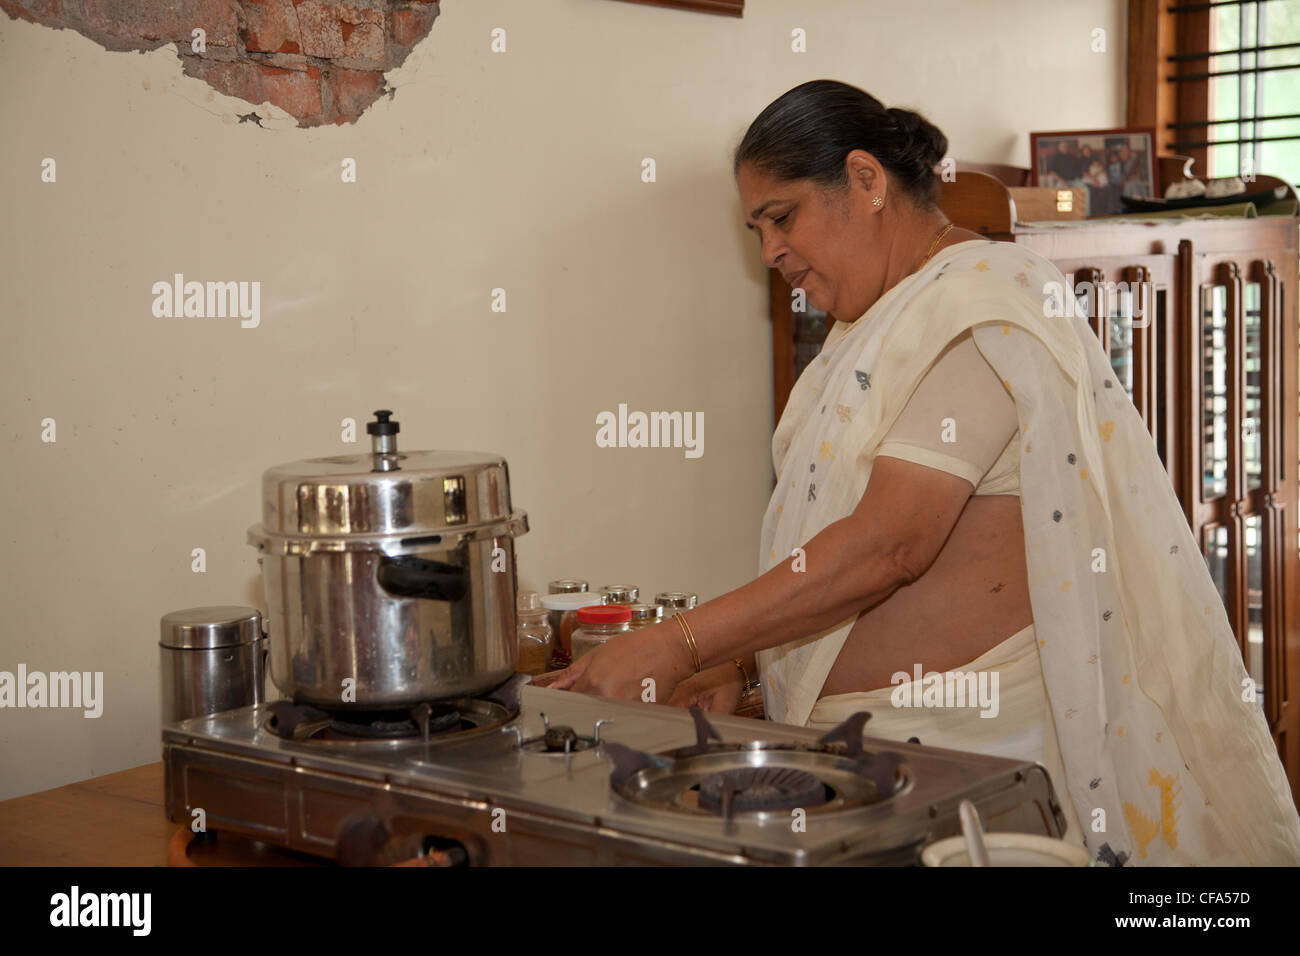 preparation of traditional indian cuisine stock photo, royalty